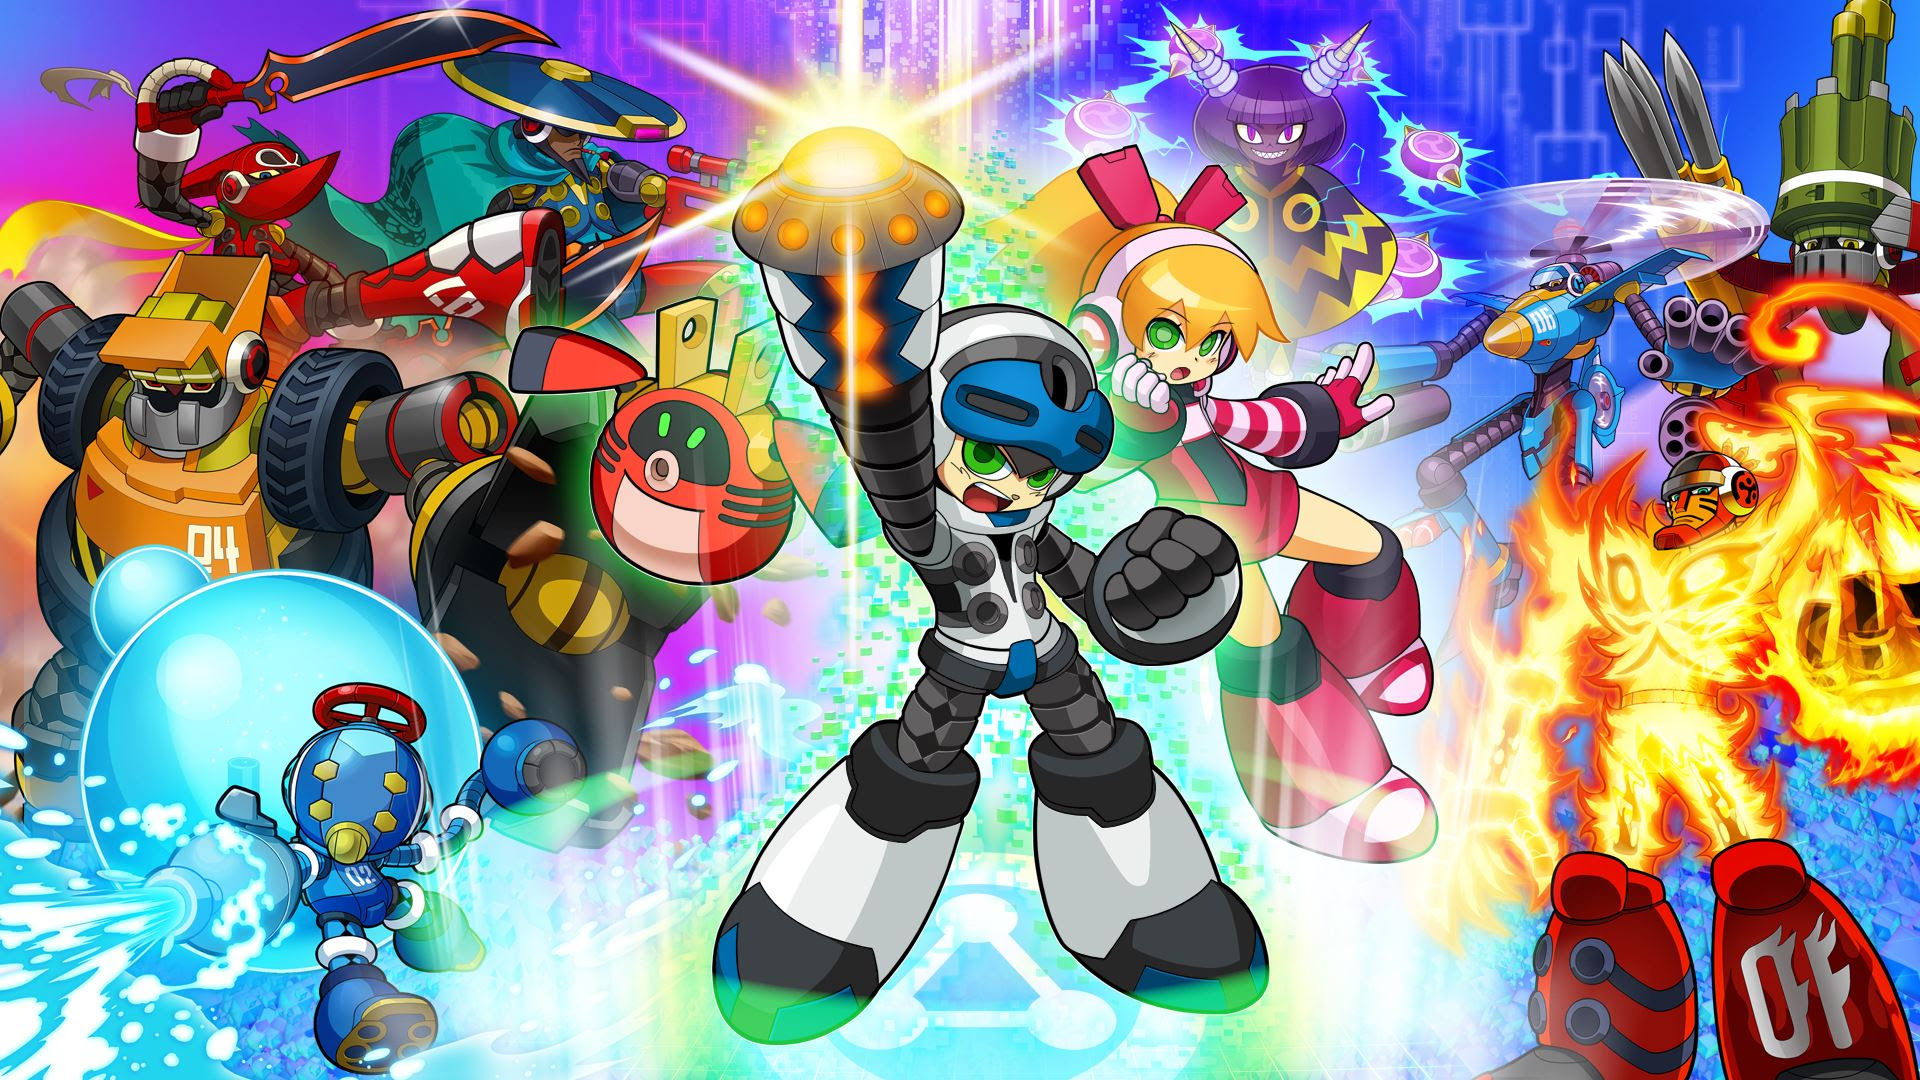 Inafune's struggling studio Comcept acquired by Level-5 screenshot